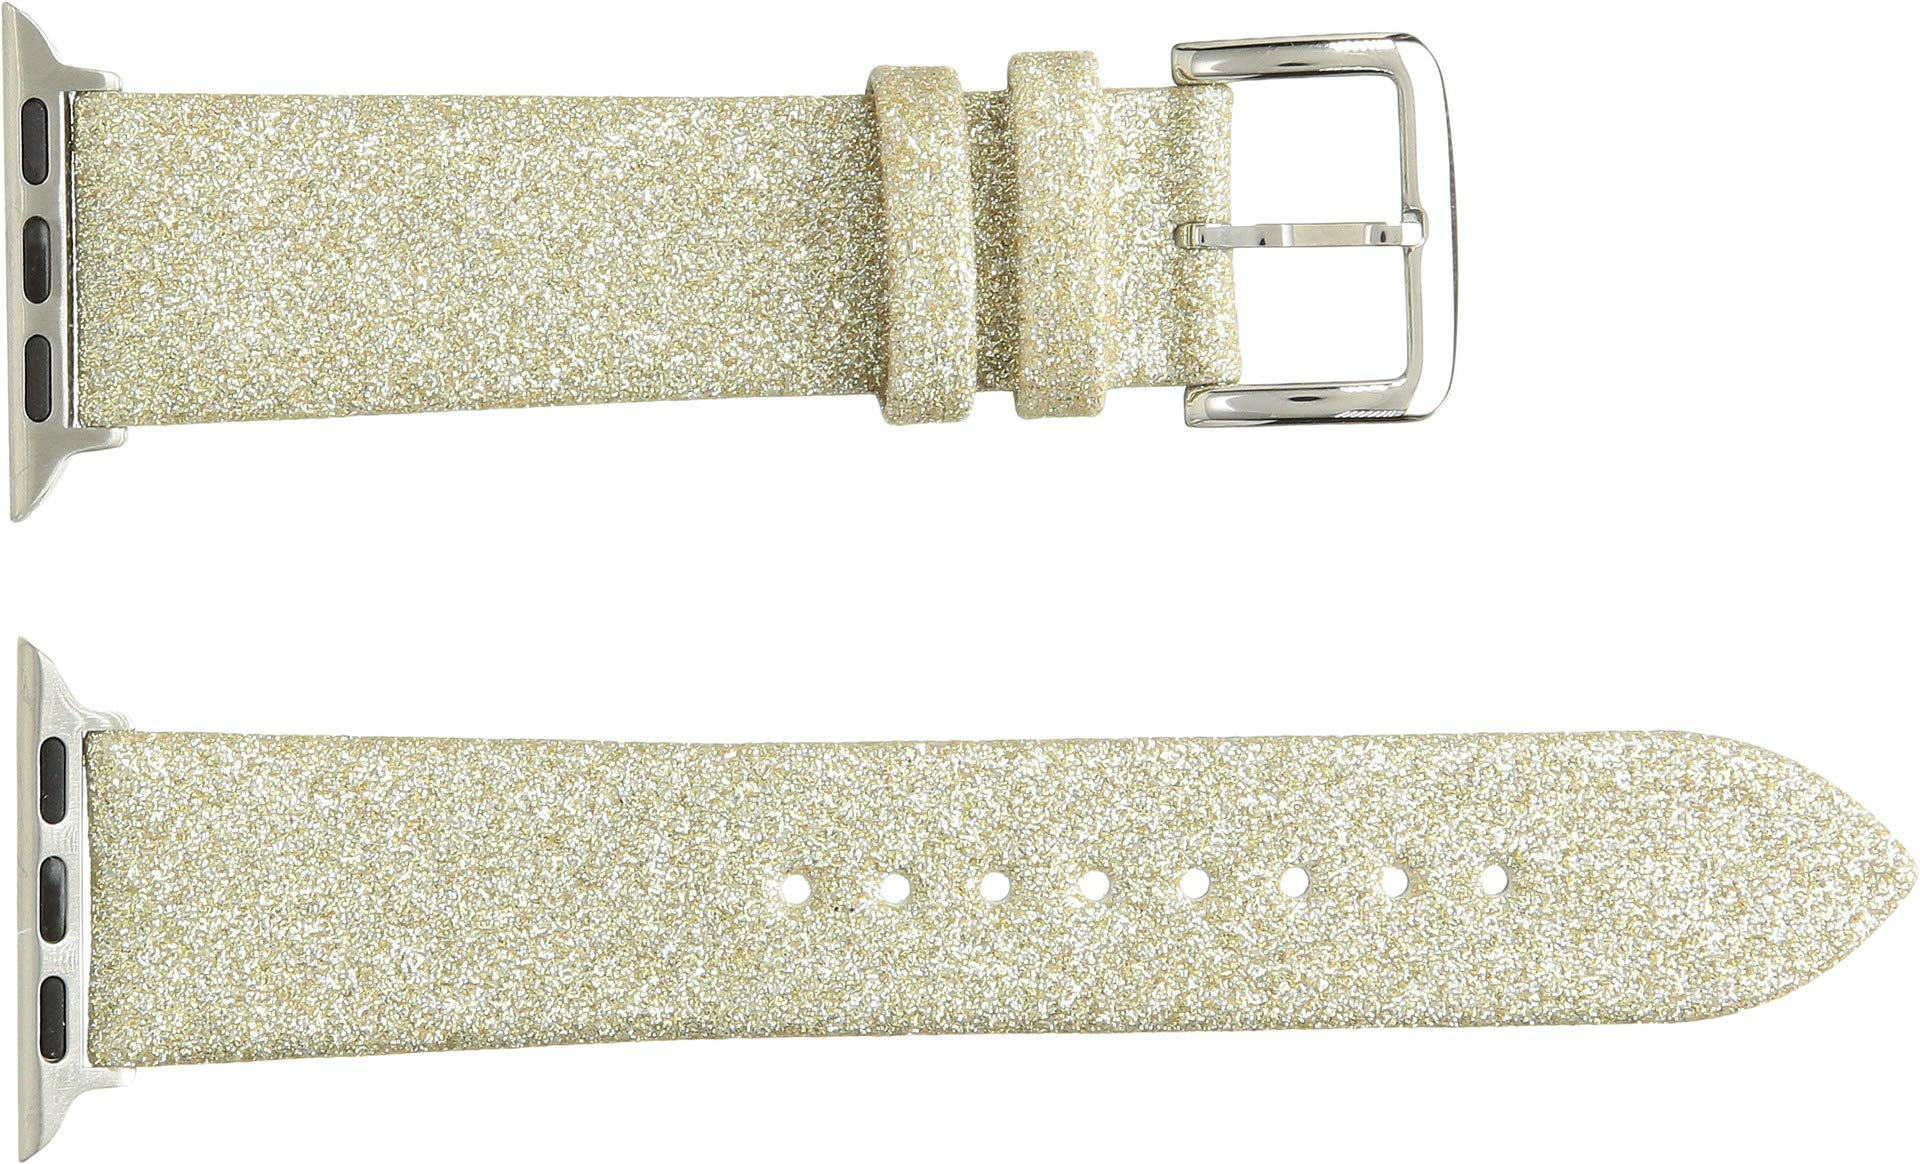 kate spade new york KSS0019 38mm Apple Straps Genuine Leather Gold Watch Strap by Kate Spade New York